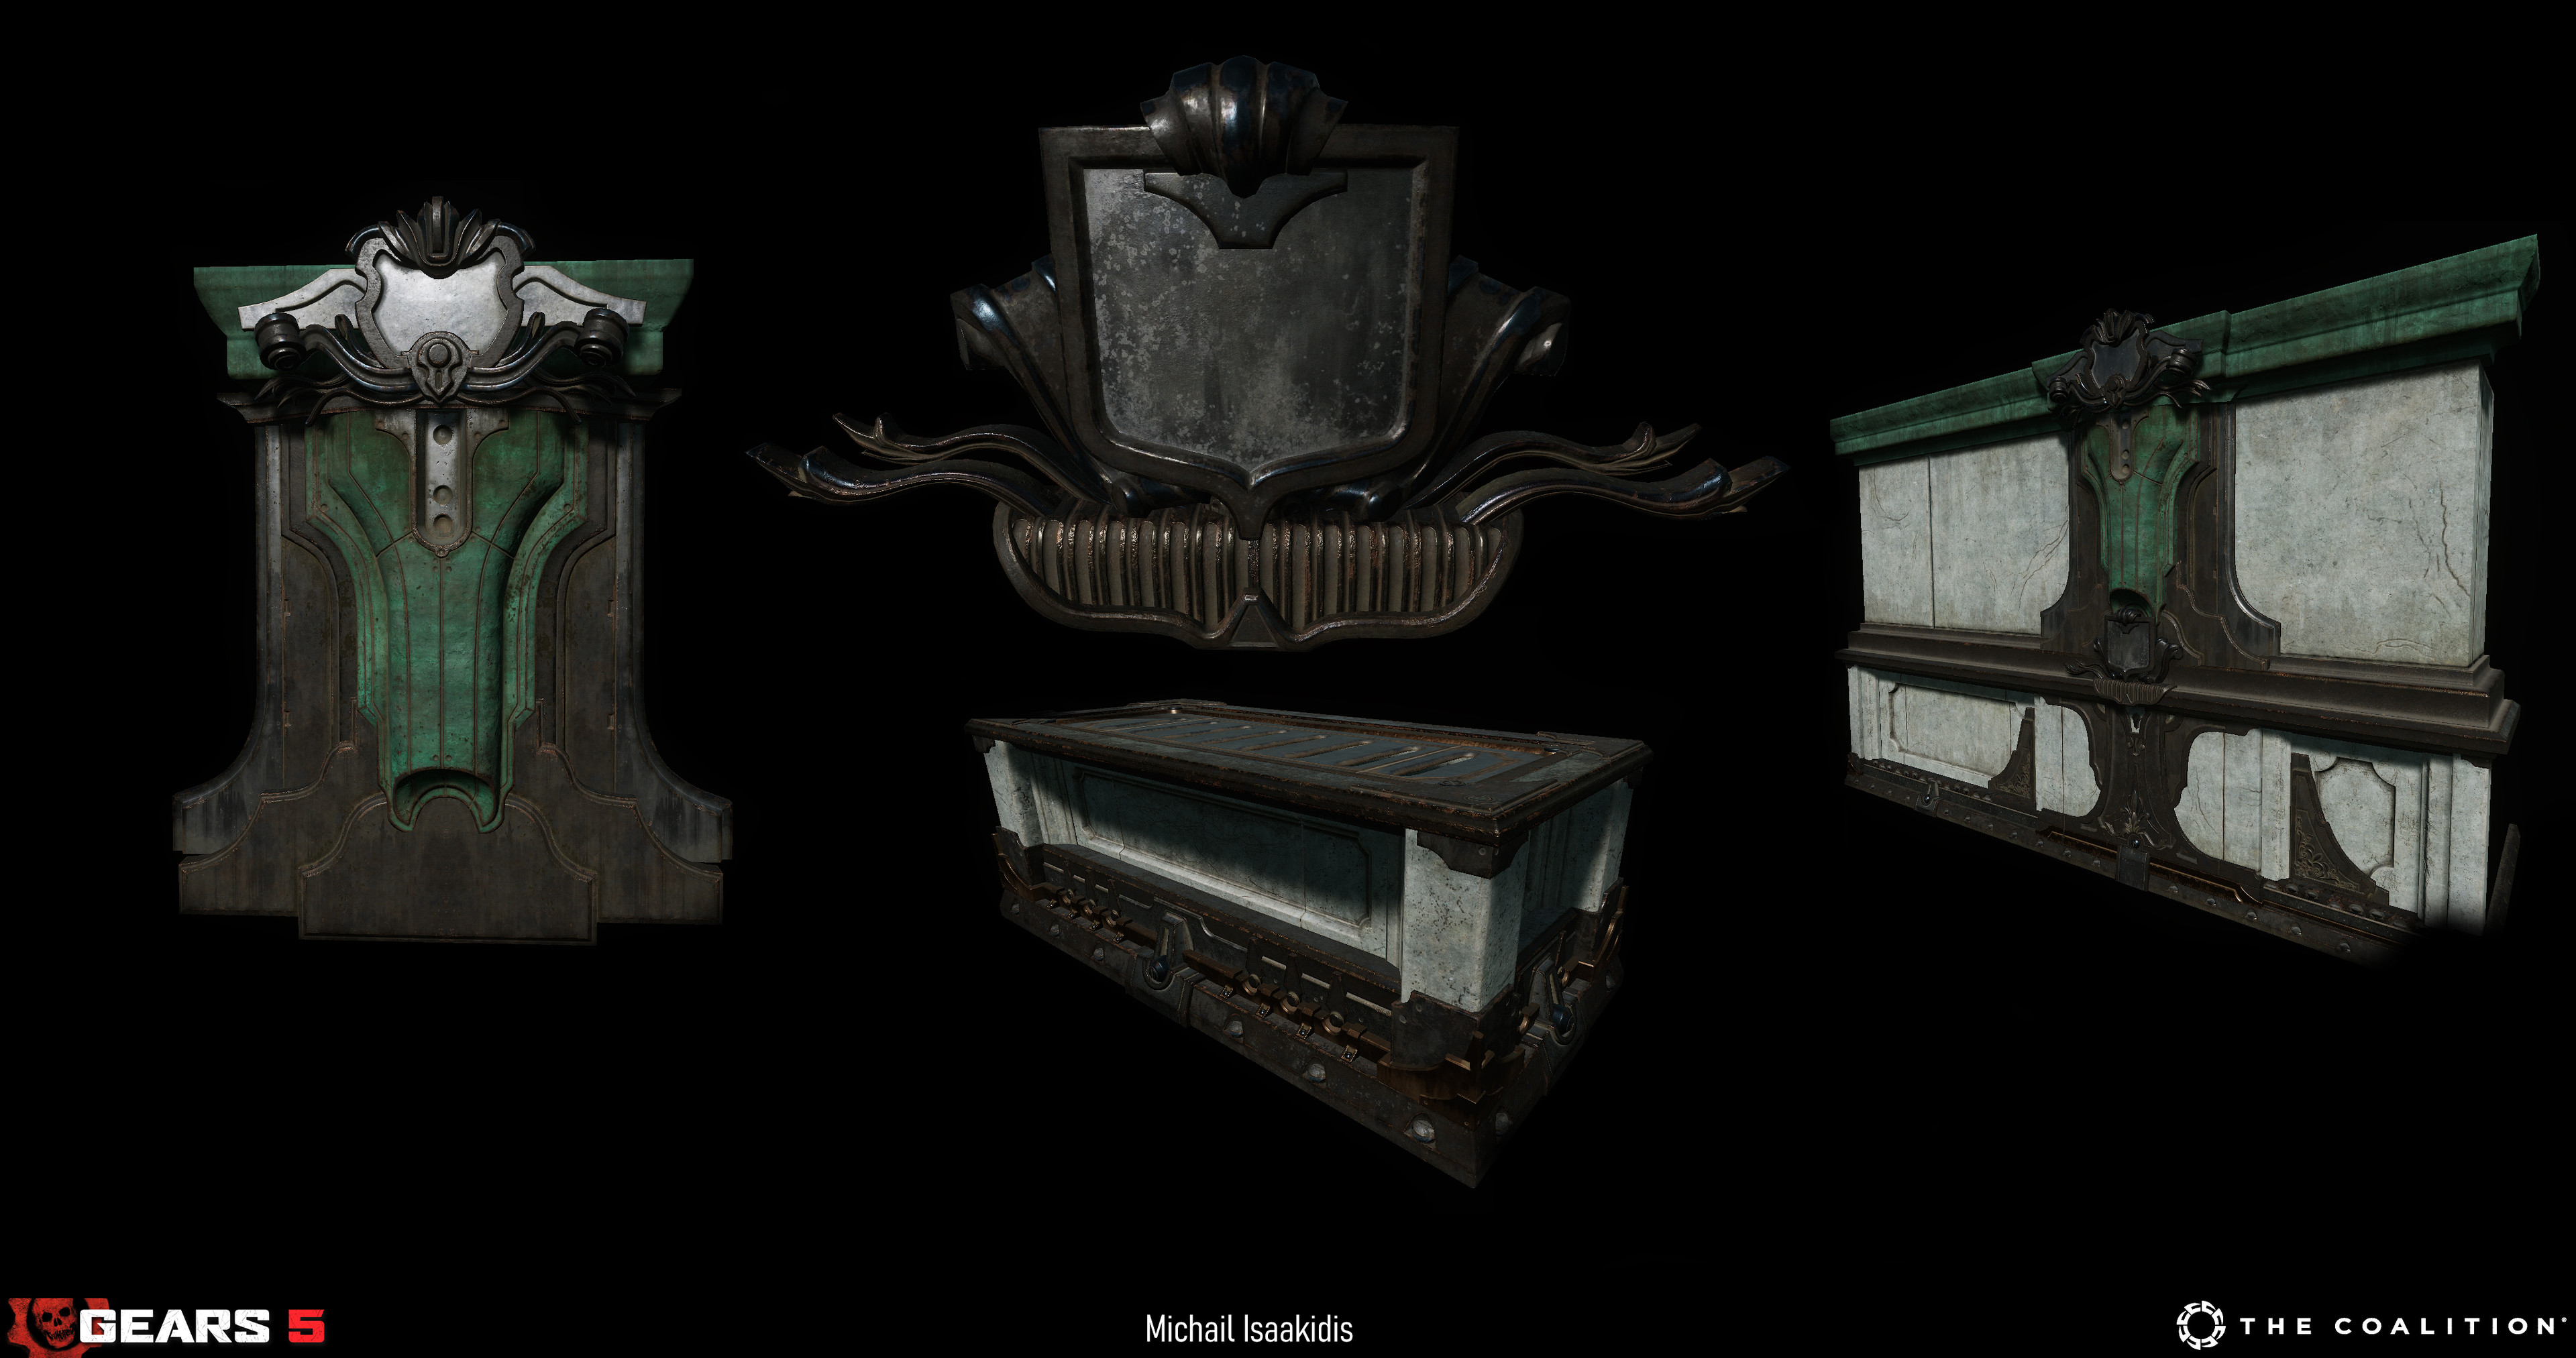 Theses assets utilise a combination of unique bake materials and trim sheets. 